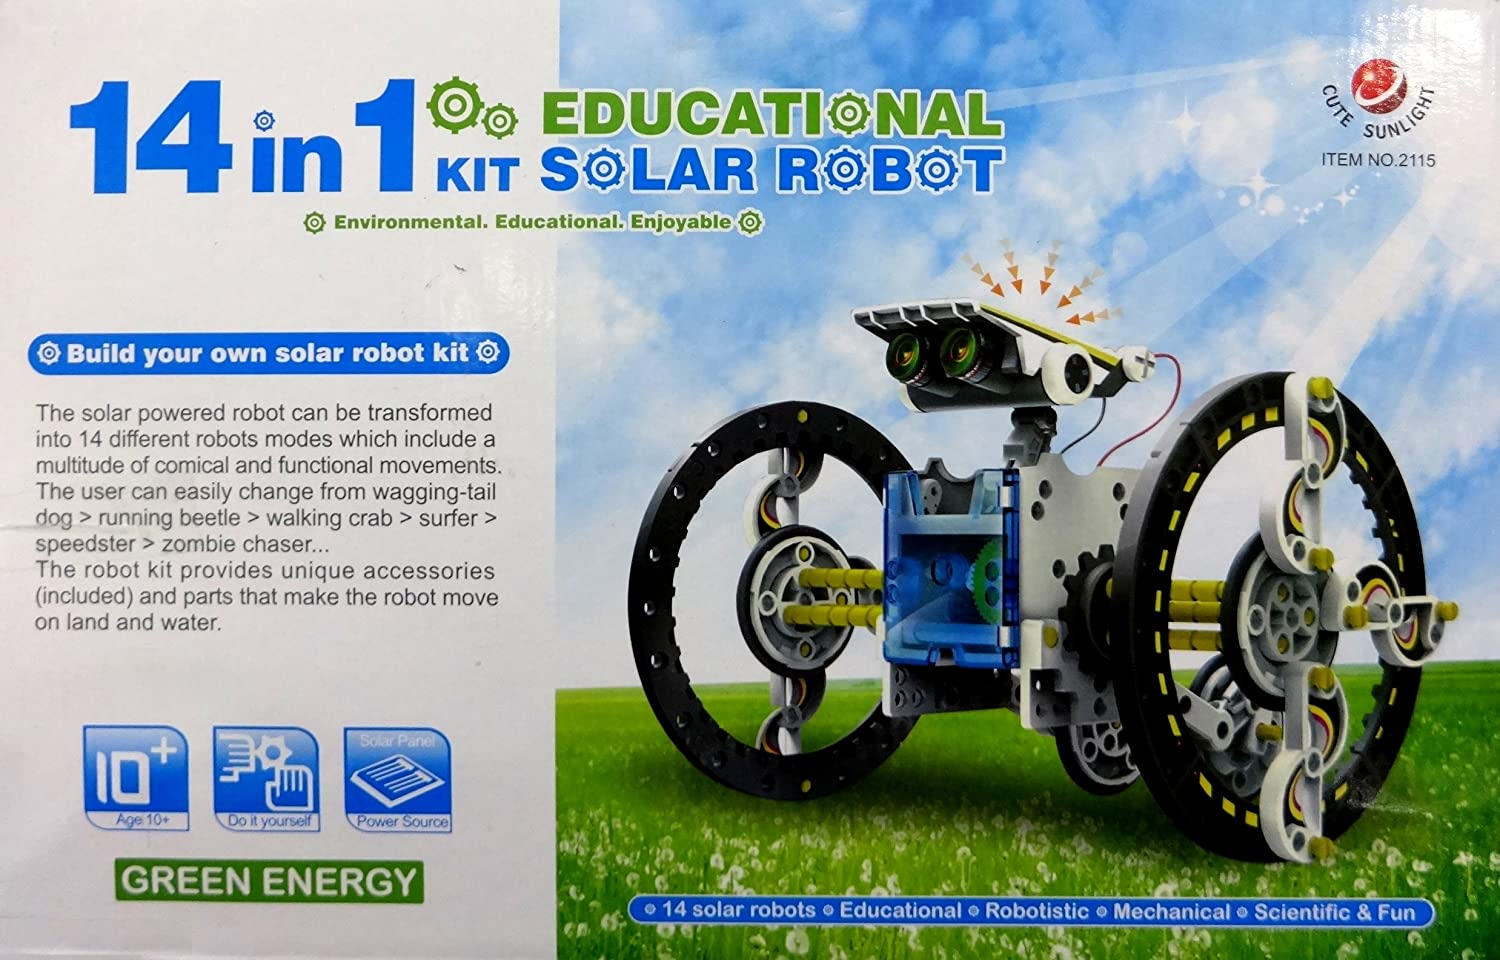 Cute sunlight 14 in 1 educational solar powered robot diy kit cute sunlight 14 in 1 educational solar powered robot diy kit amazon toys games solutioingenieria Image collections